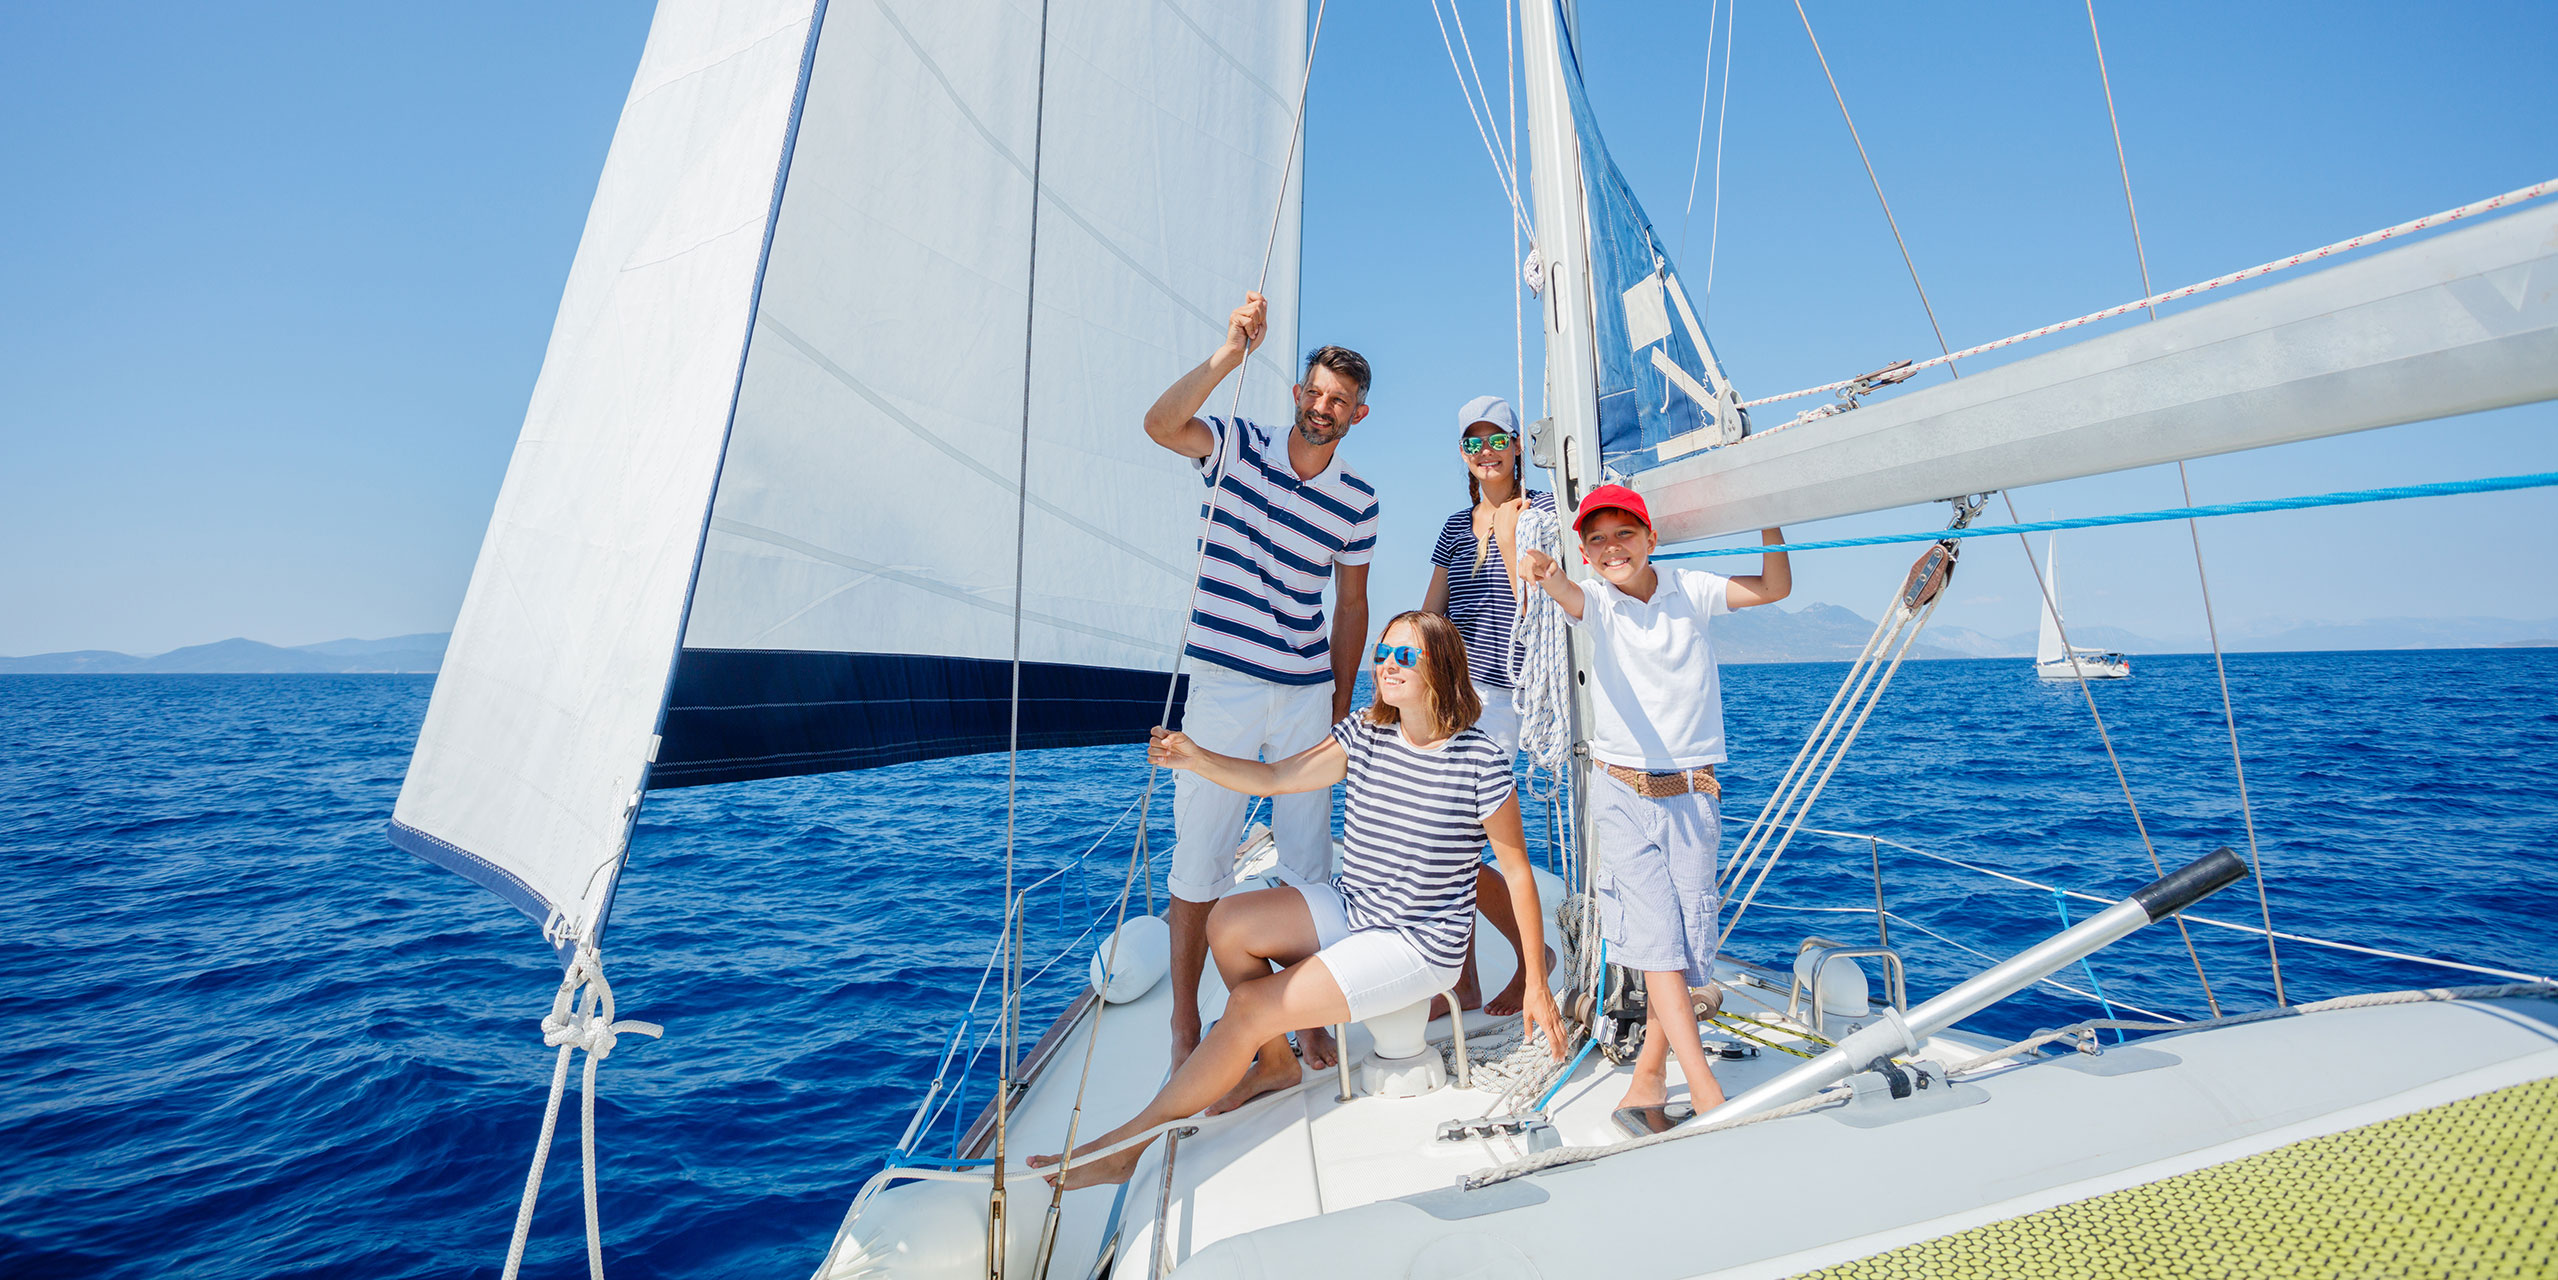 Family on Boat; Courtesy of Max Topchi/Shutterstock.com